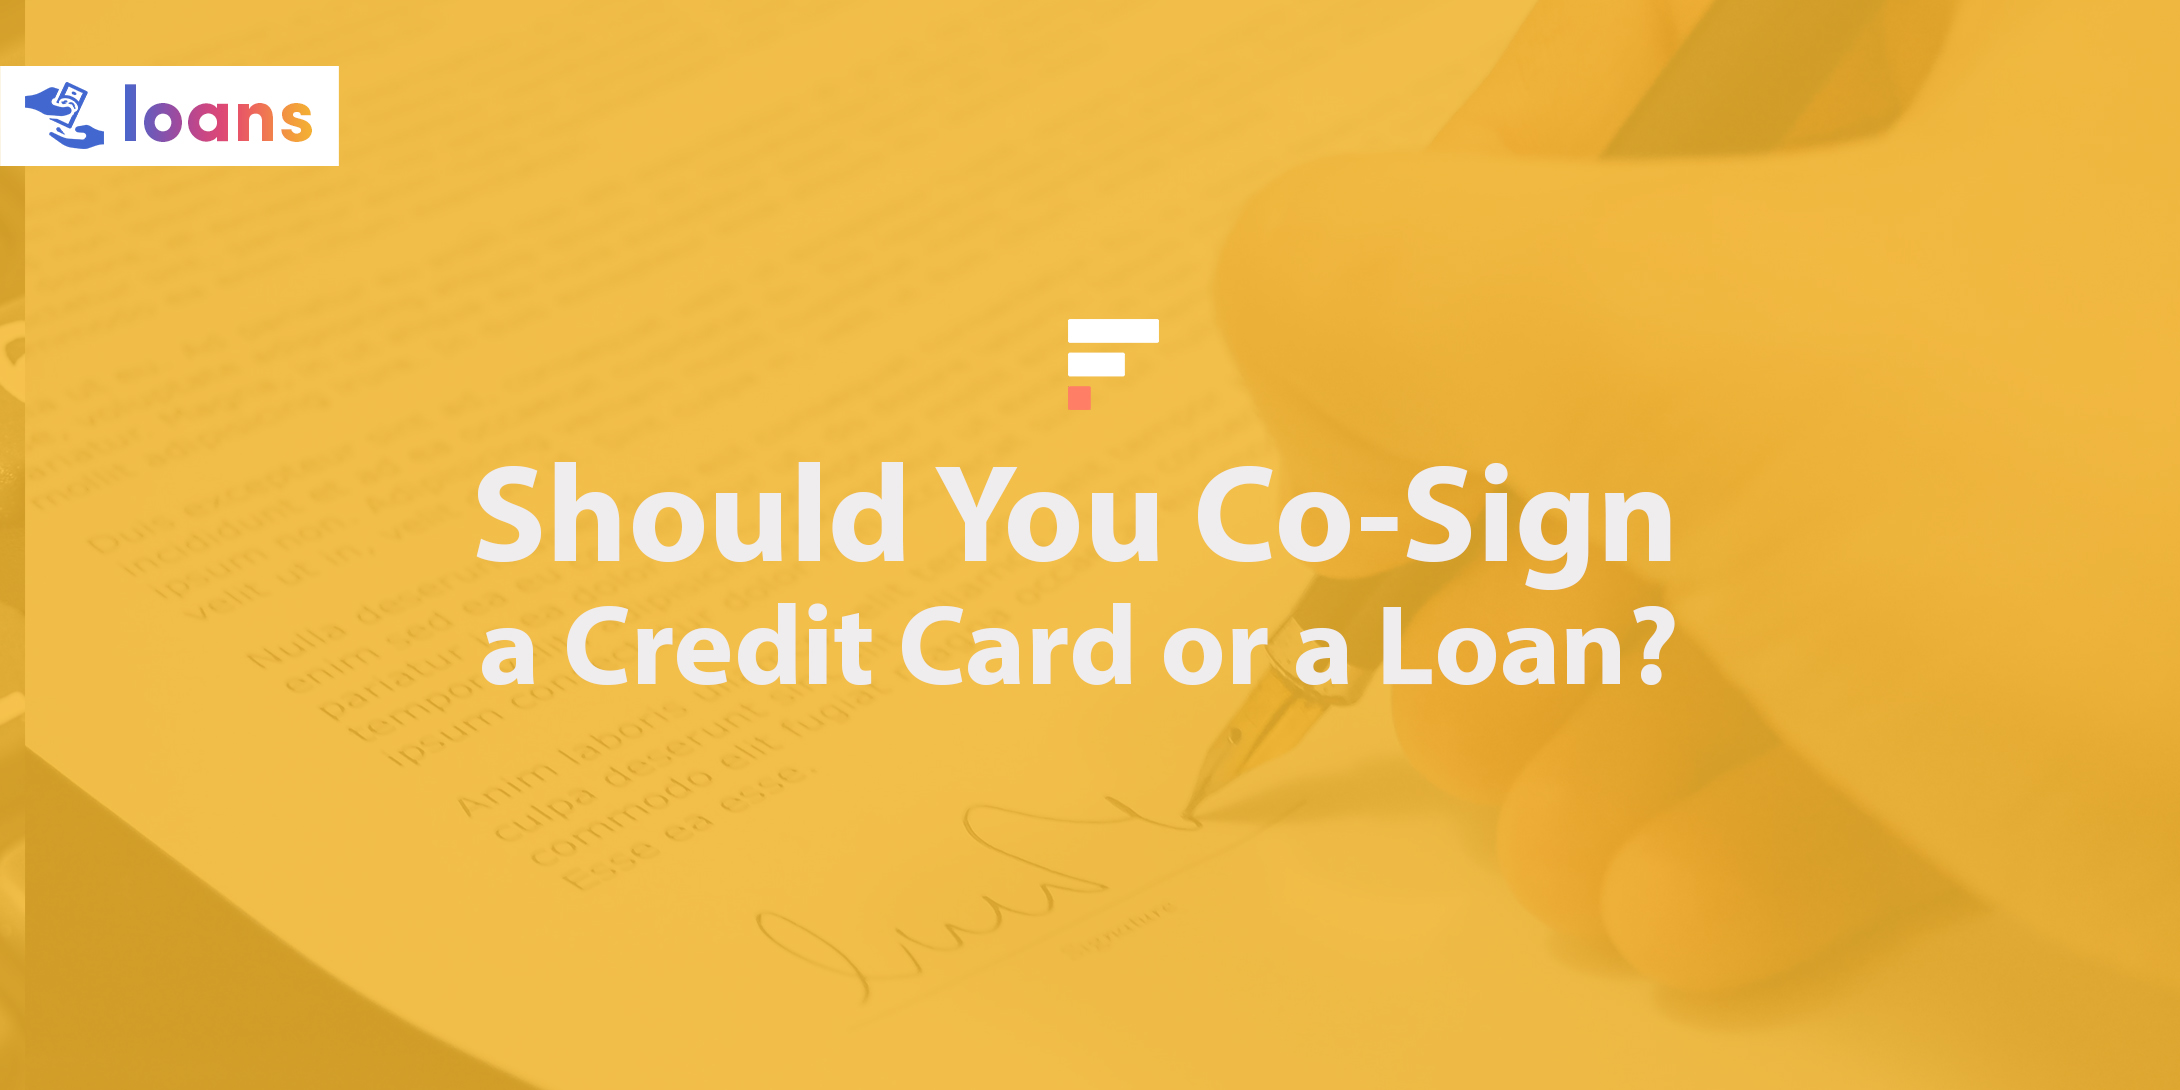 Should you co-sign a credit card?